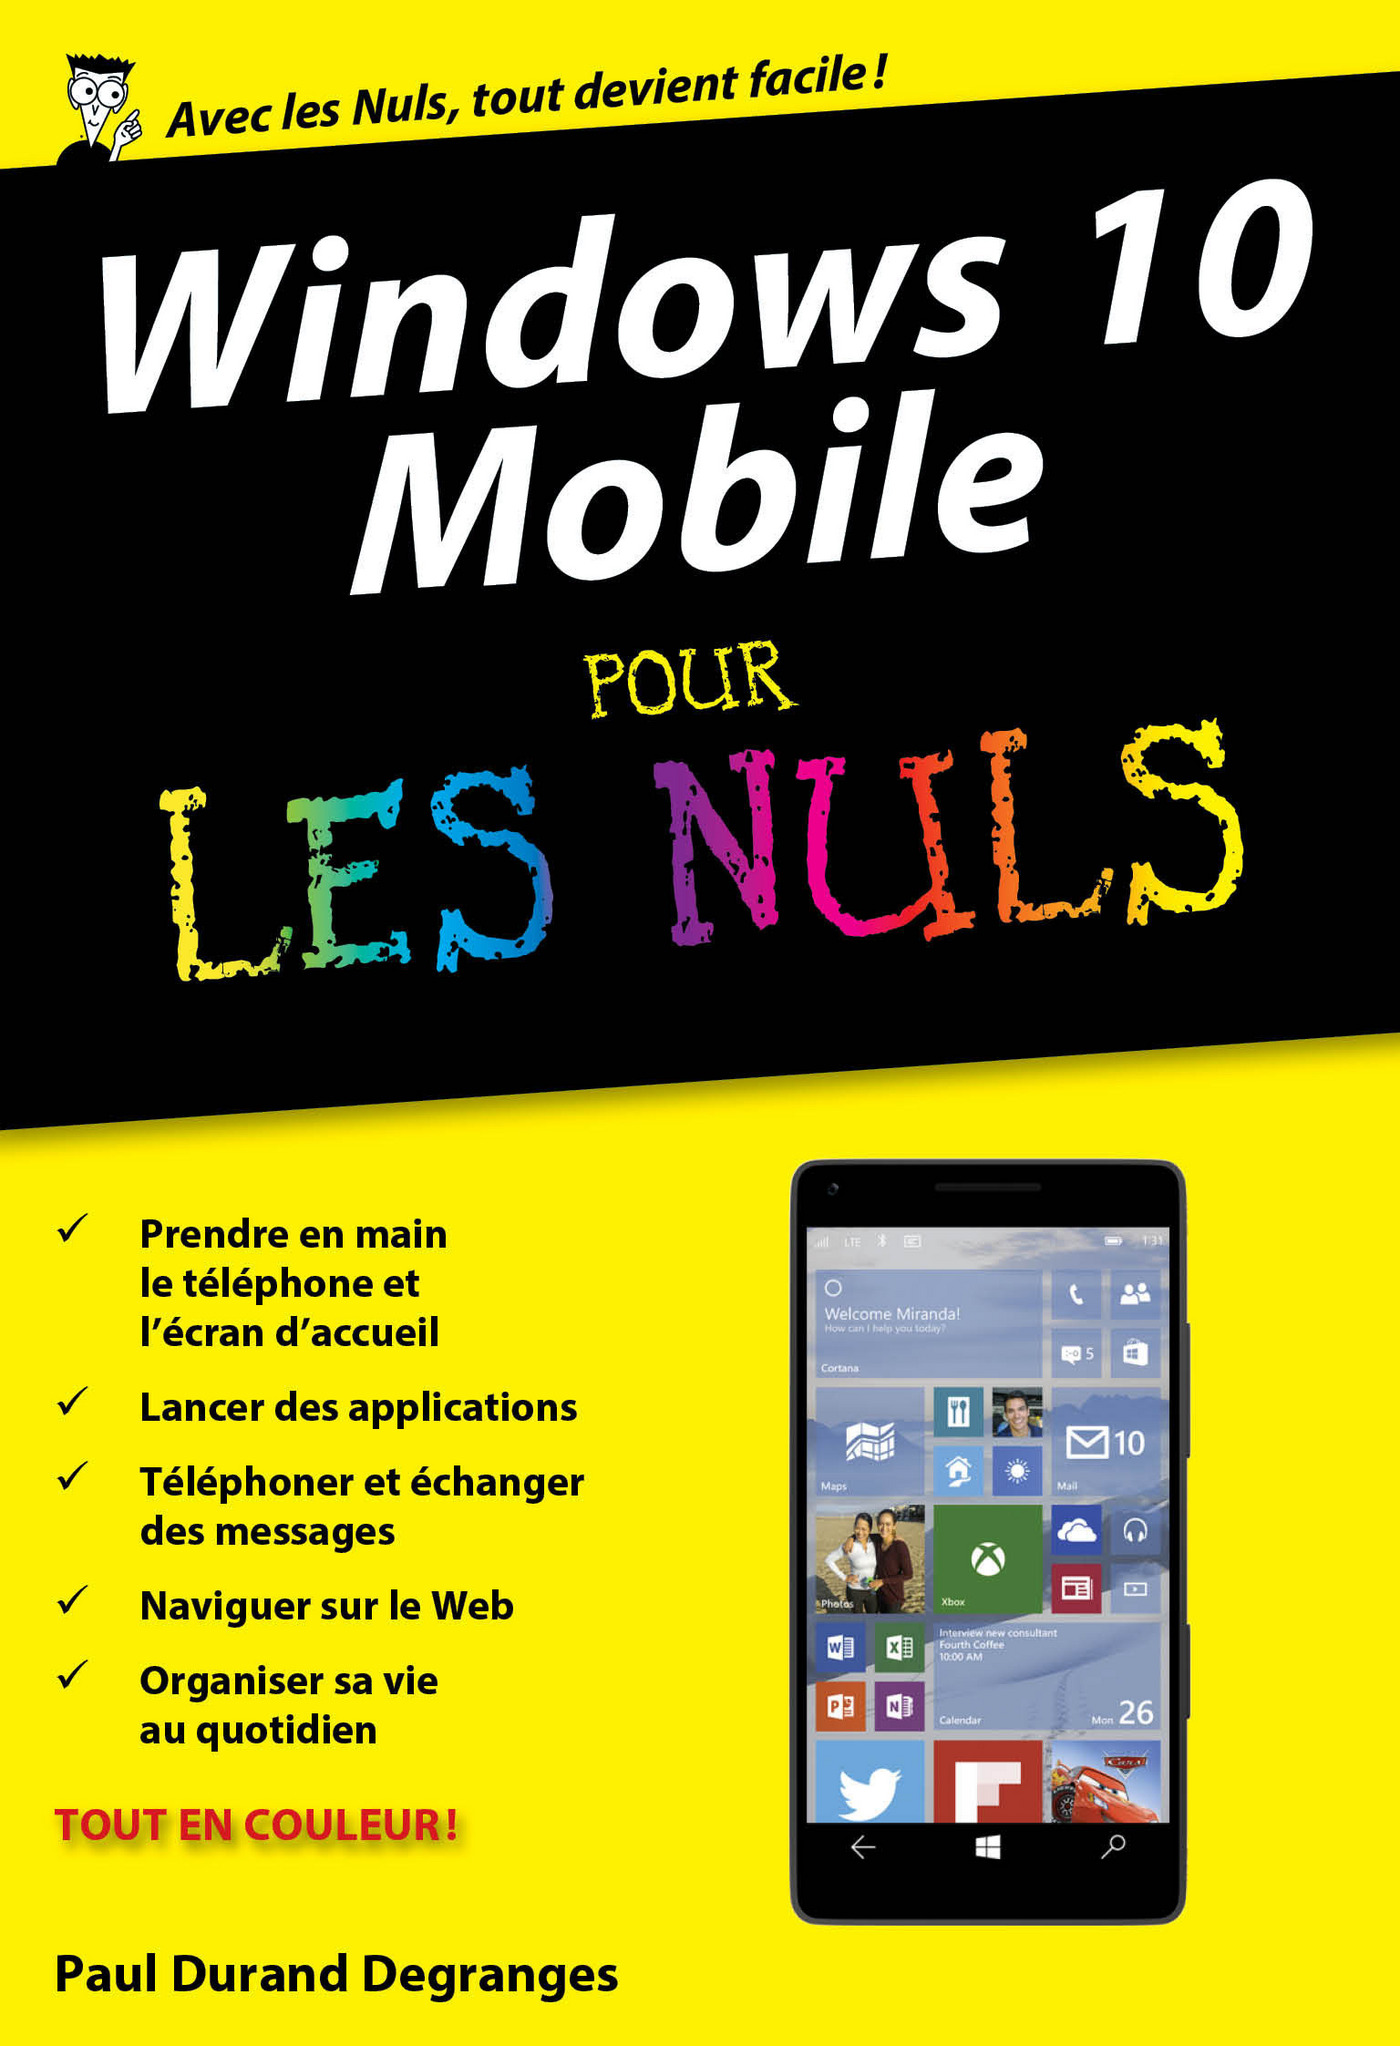 Windows 10 Mobile poche pour les Nuls (ebook)